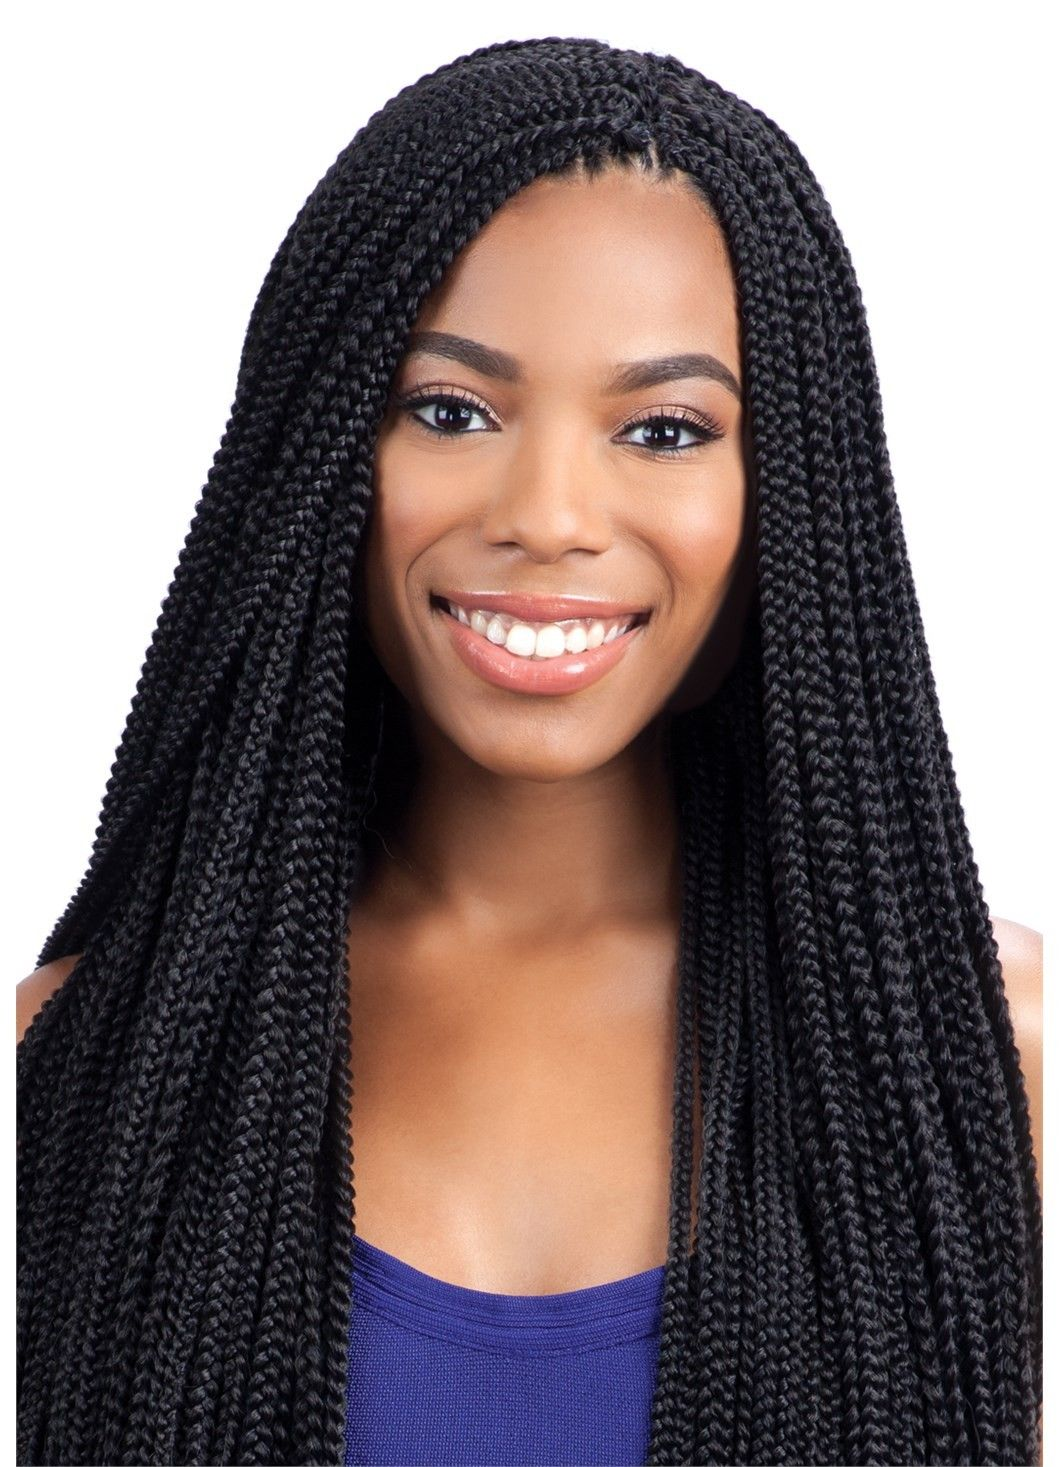 Model Model Glance Crochet Braid LONG SMALL BOX BRAID